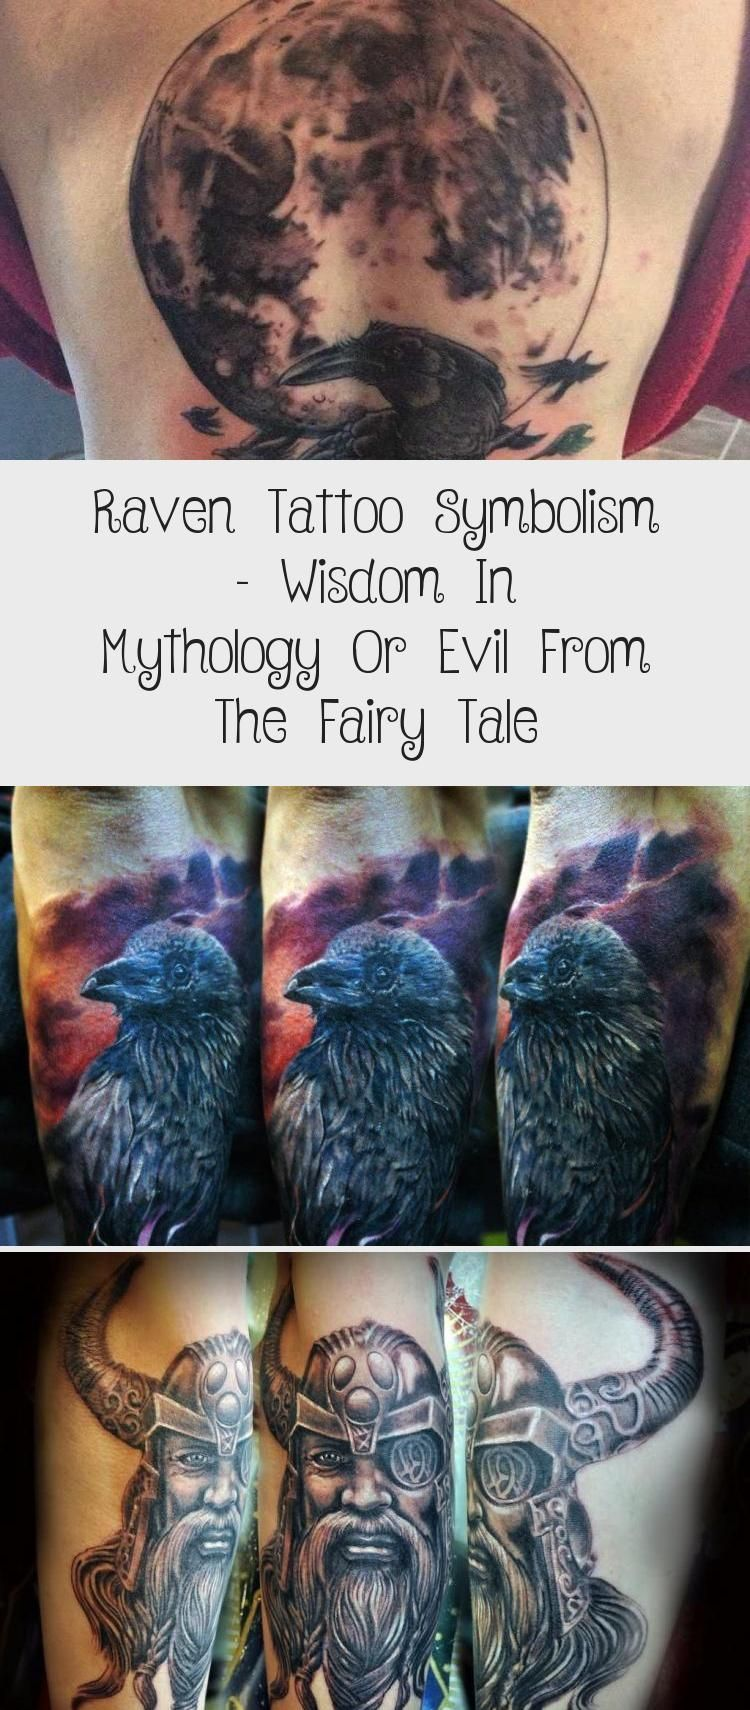 Raven tattoo symbolism - wisdom in mythology or evil from the fairy tale